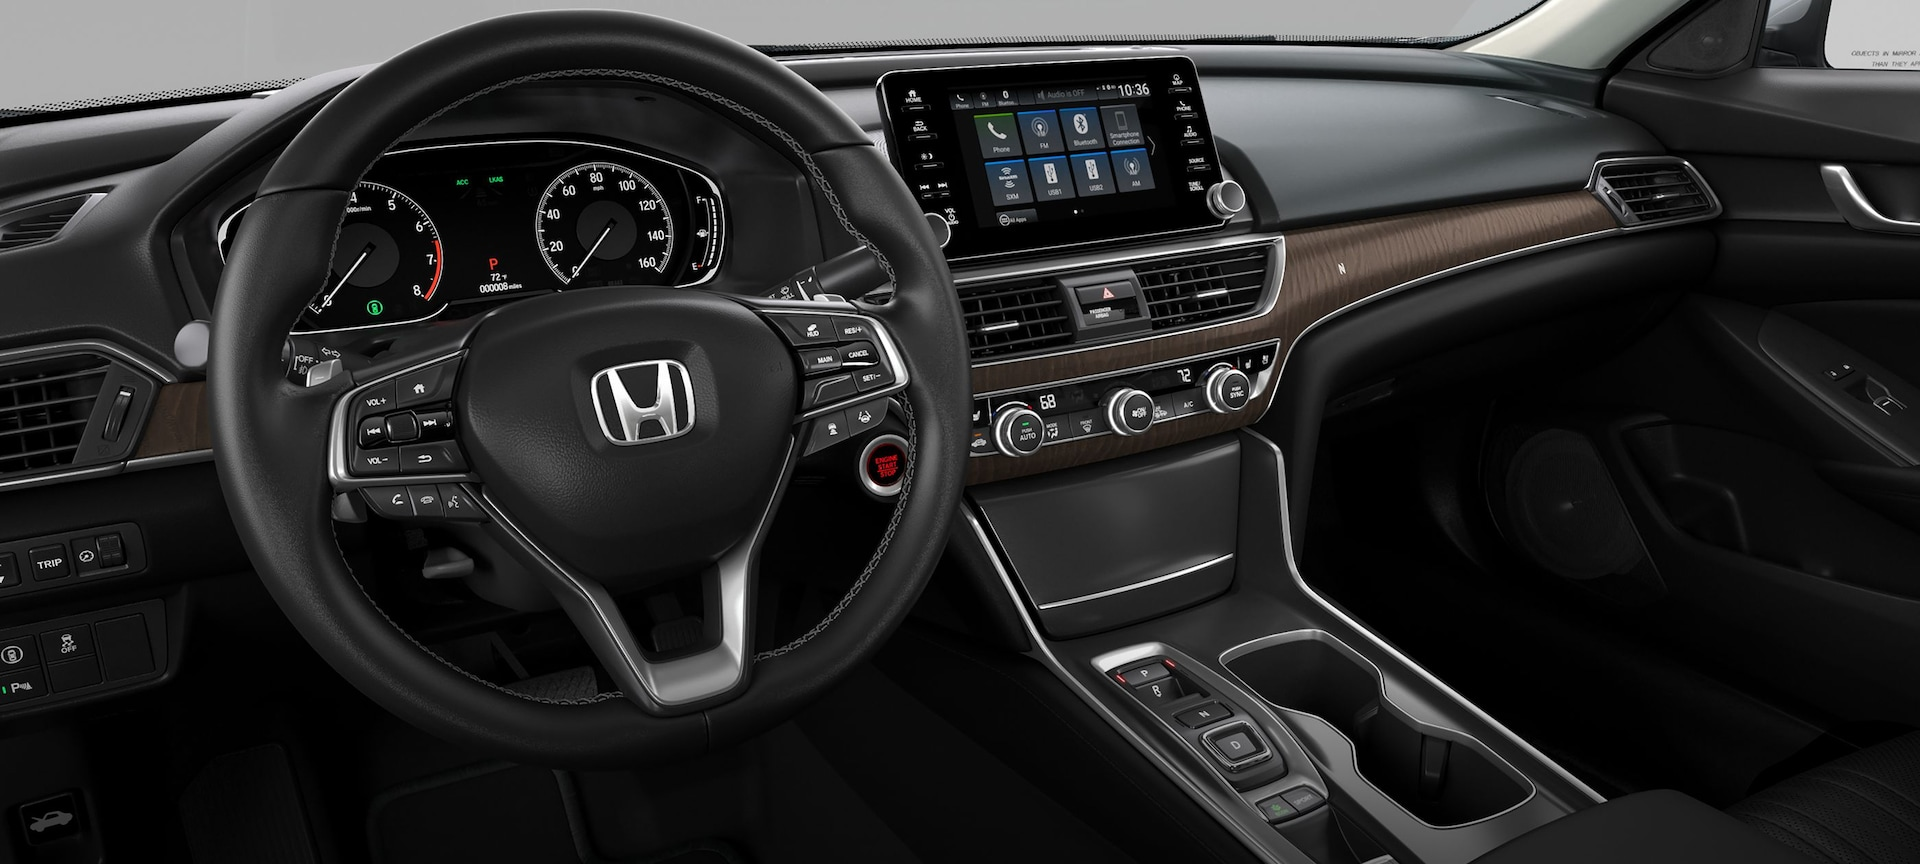 Interior view of dash and instrument panel in the 2019 Honda Accord Touring 2.0T shown in Black Leather.